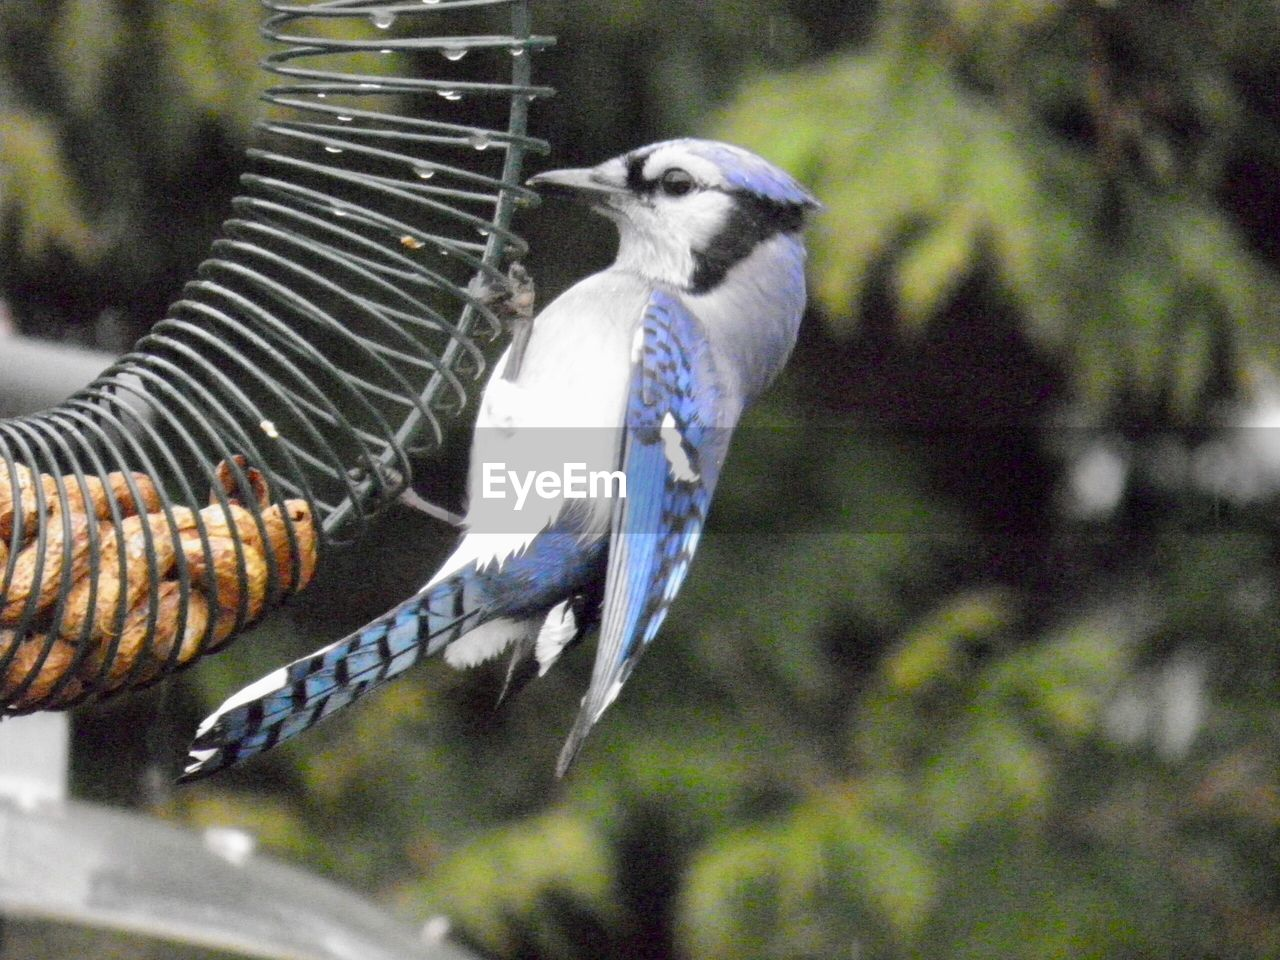 animal themes, animal, vertebrate, one animal, animal wildlife, animals in the wild, bird, no people, tree, focus on foreground, plant, nature, mammal, day, perching, close-up, outdoors, side view